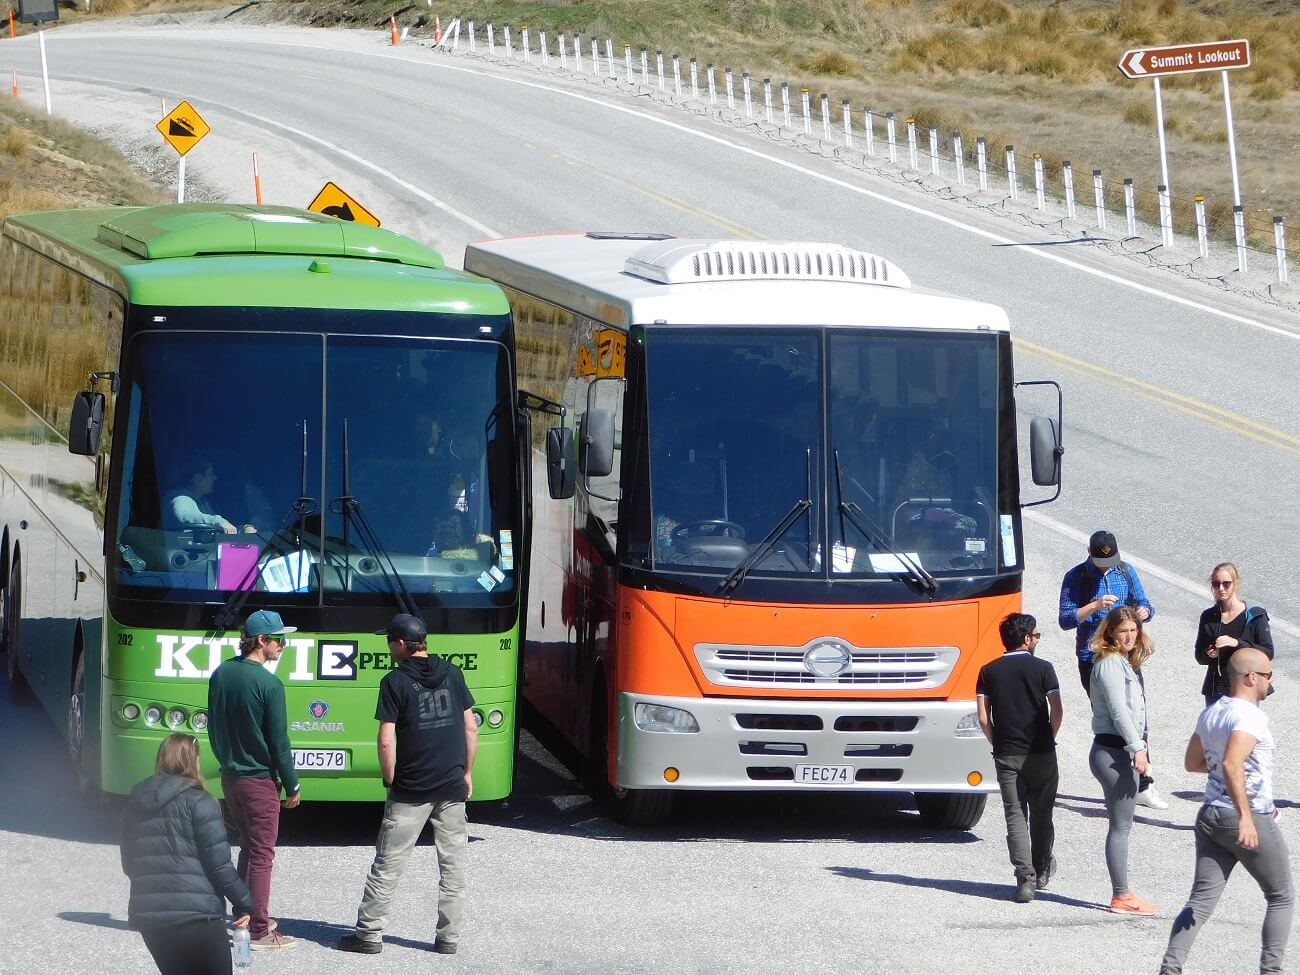 Thinking of travelling around New Zealand by bus? We get 10% off all Stray and Kiwi Experience Bus passes- just email us the pass you'd like and we'll sort it out for you!   If you're not sure what pass is for you, or which company you'd prefer, we can also help with that- email bookingstripfarm@gmail.com and we'll help you decide what pass is best for you.